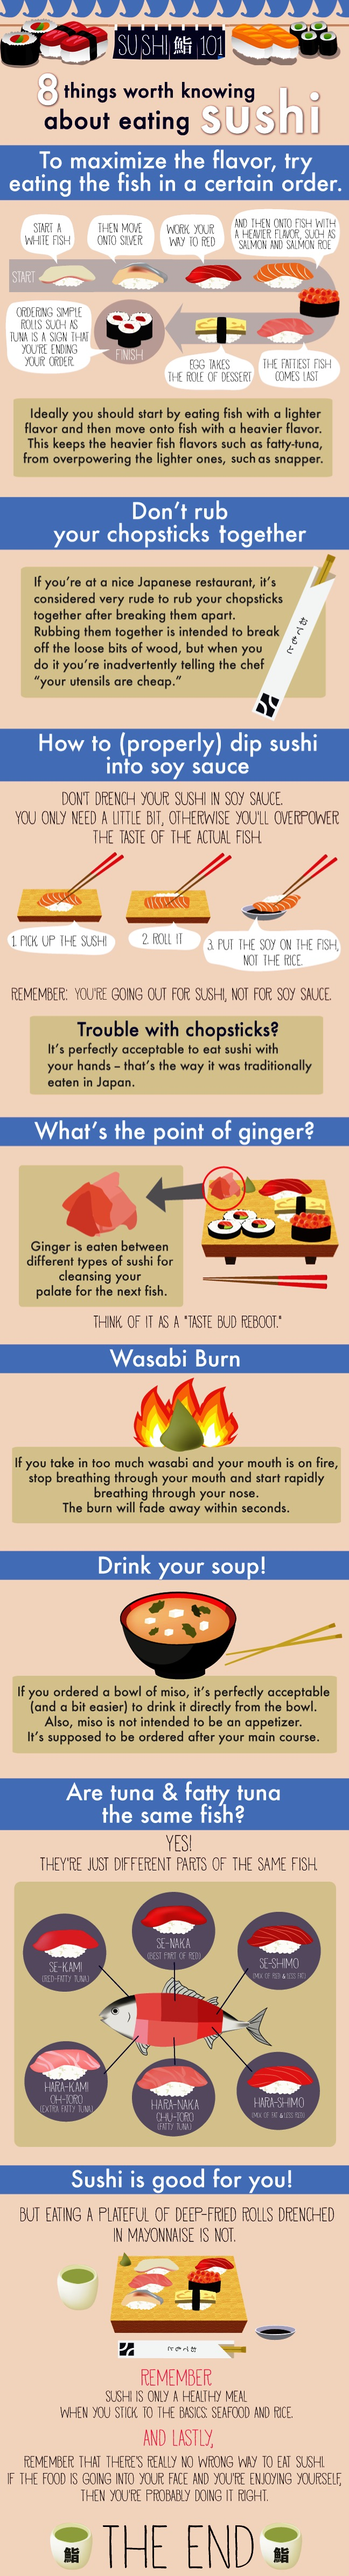 Sushi Facts Infographic